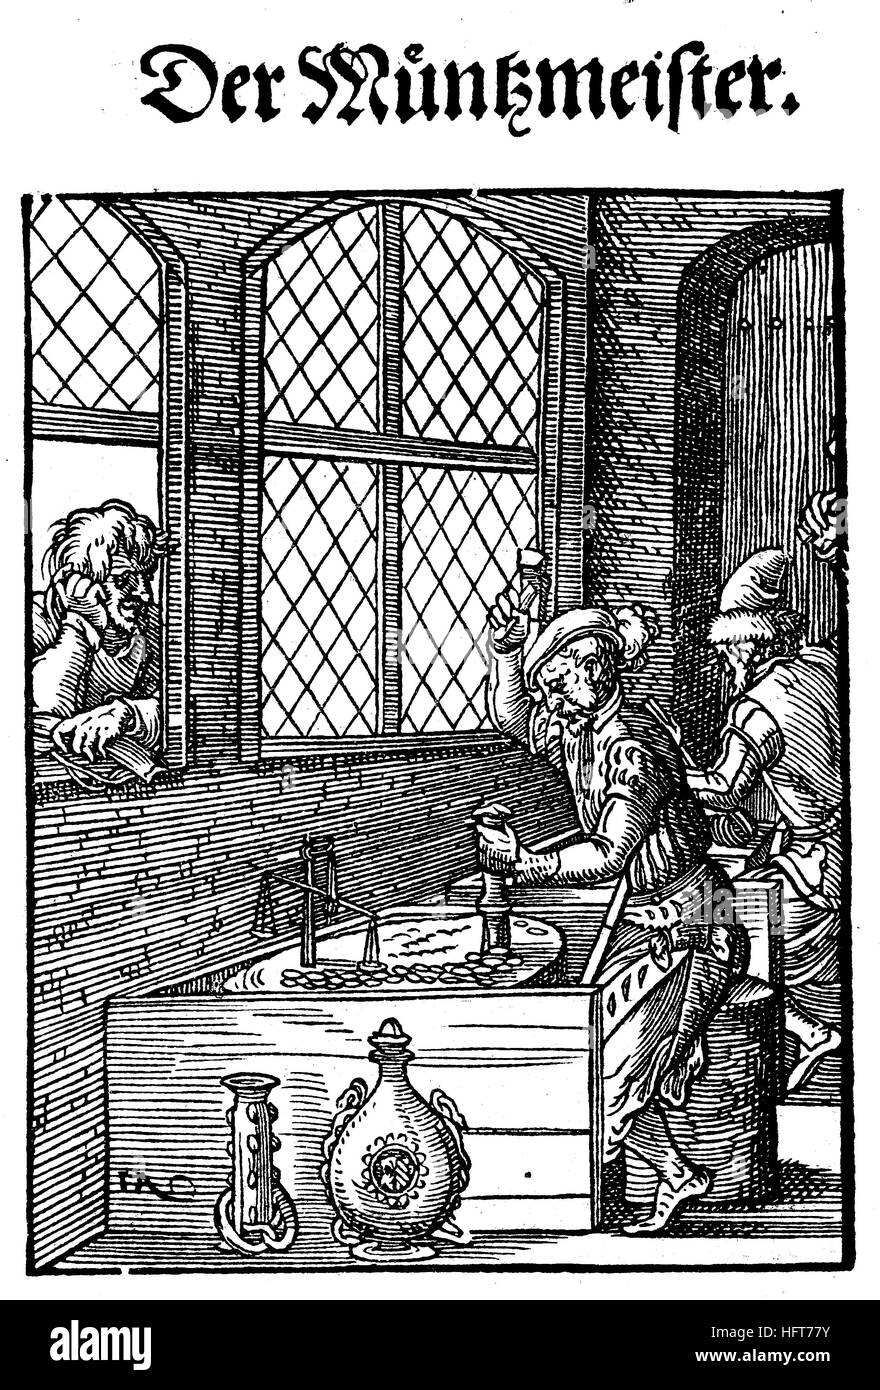 The coin maker, Der Münzmeister, Woodcut from the, Das Saendebuch, a famous series of woodcuts of the trades - Stock Image